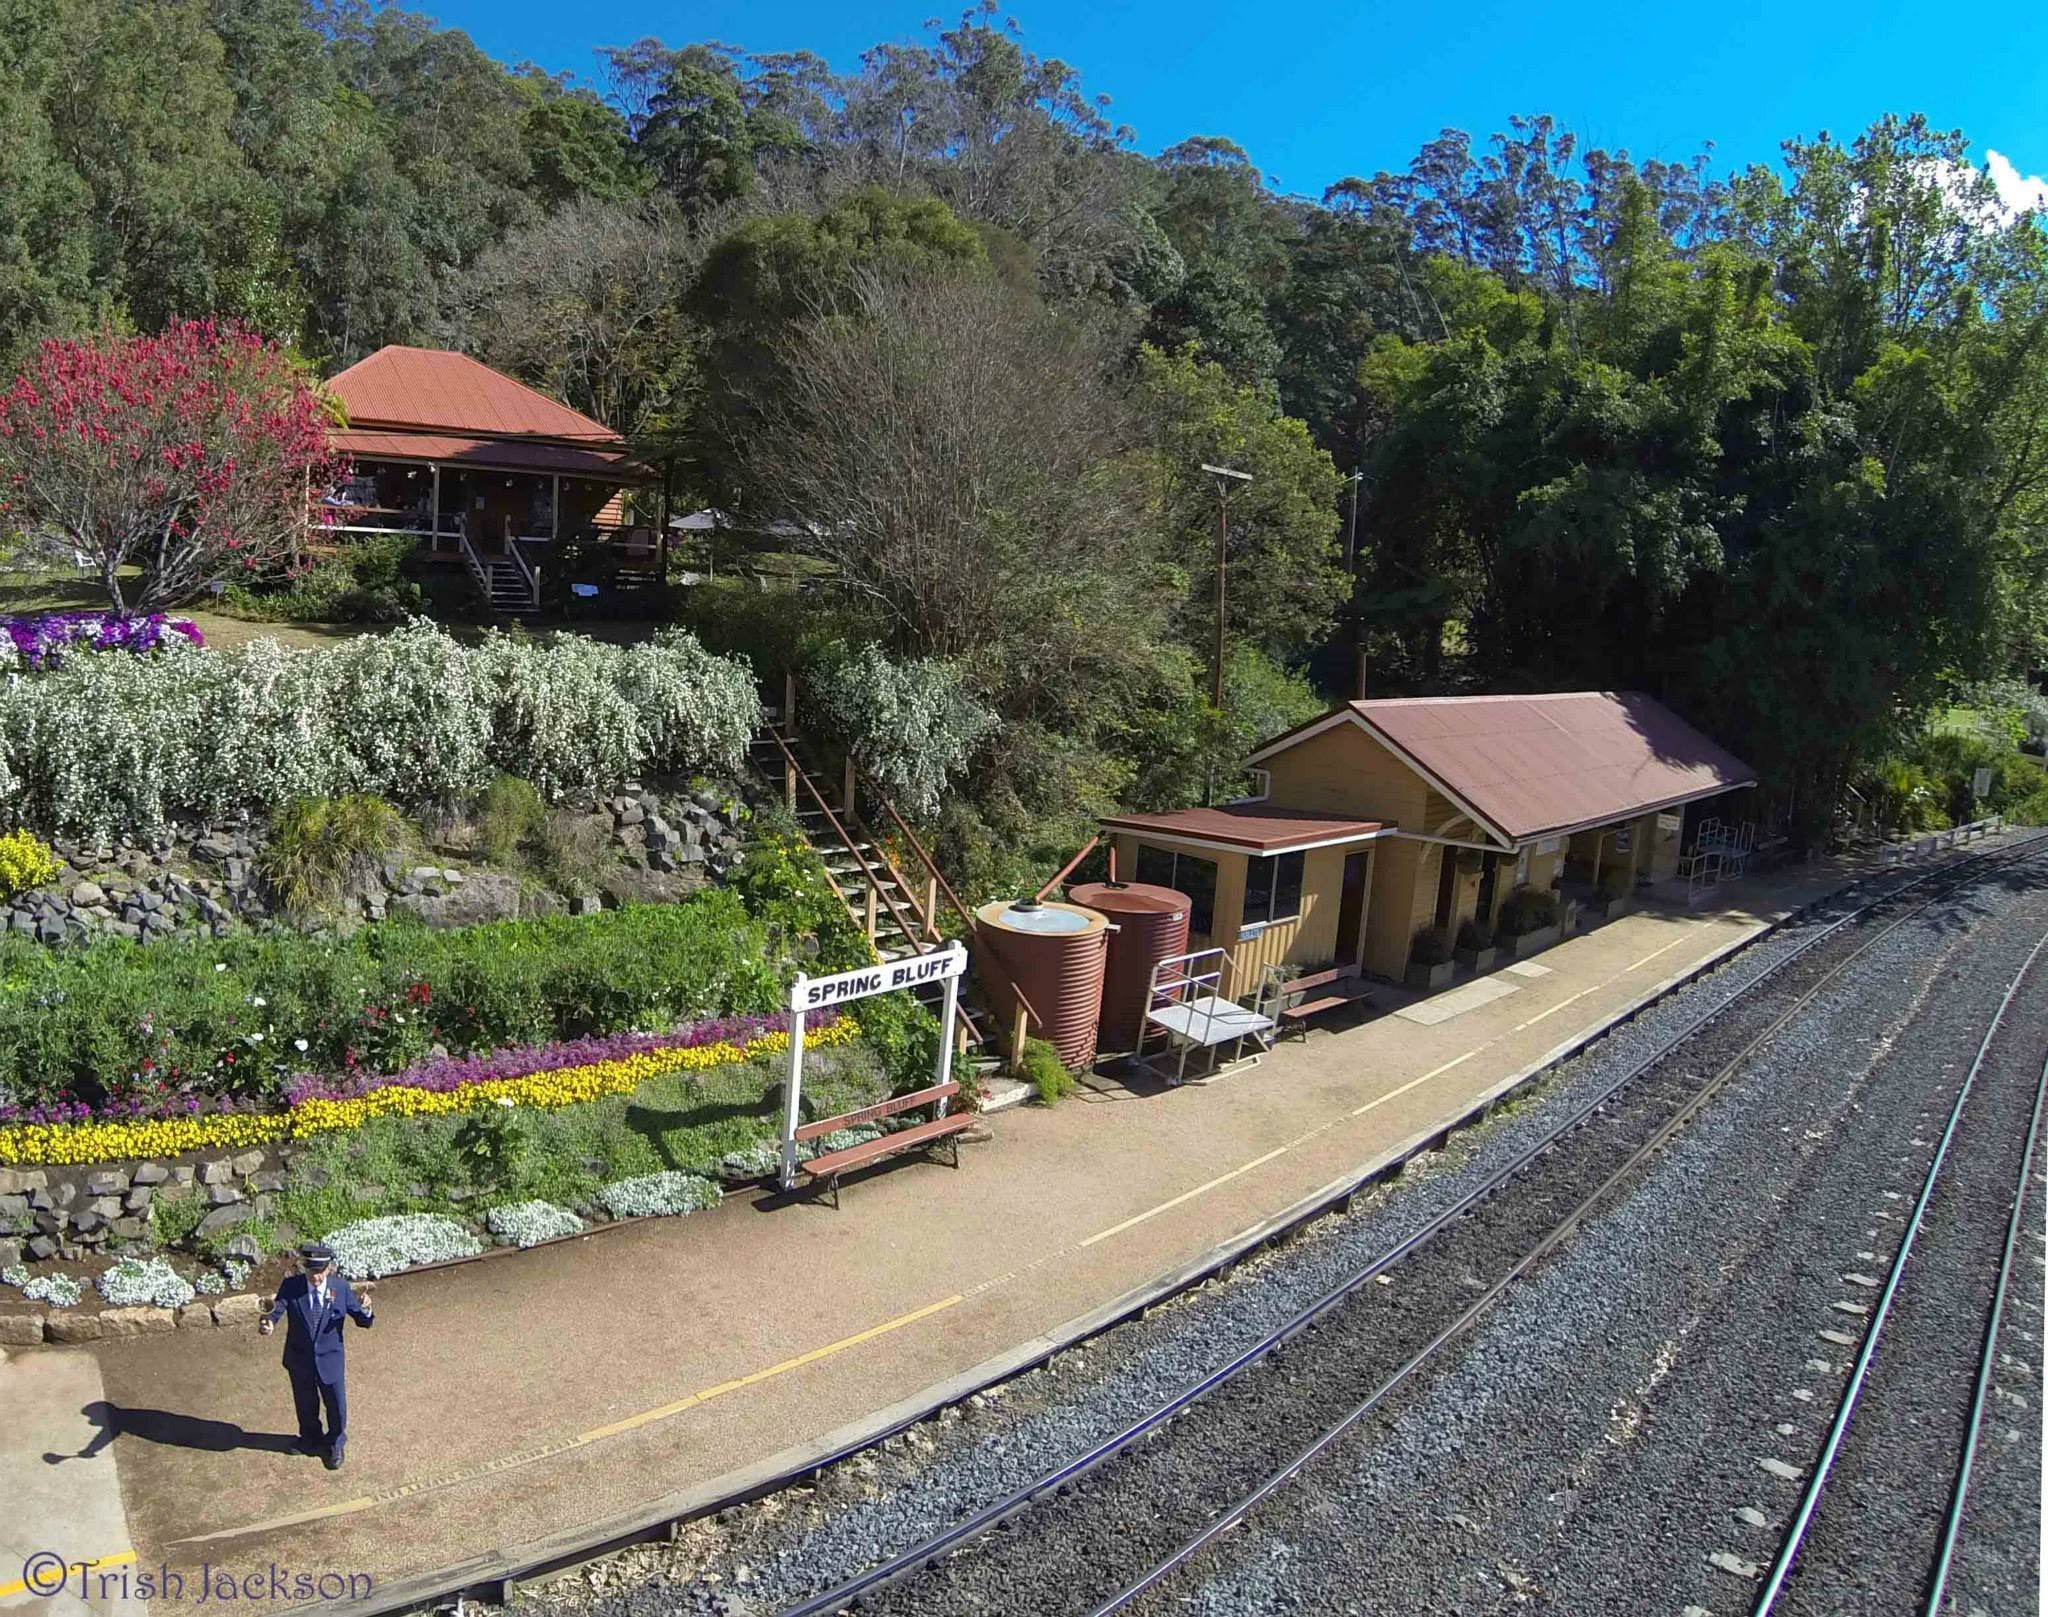 Spring Bluff Railway Station - Accommodation Mt Buller